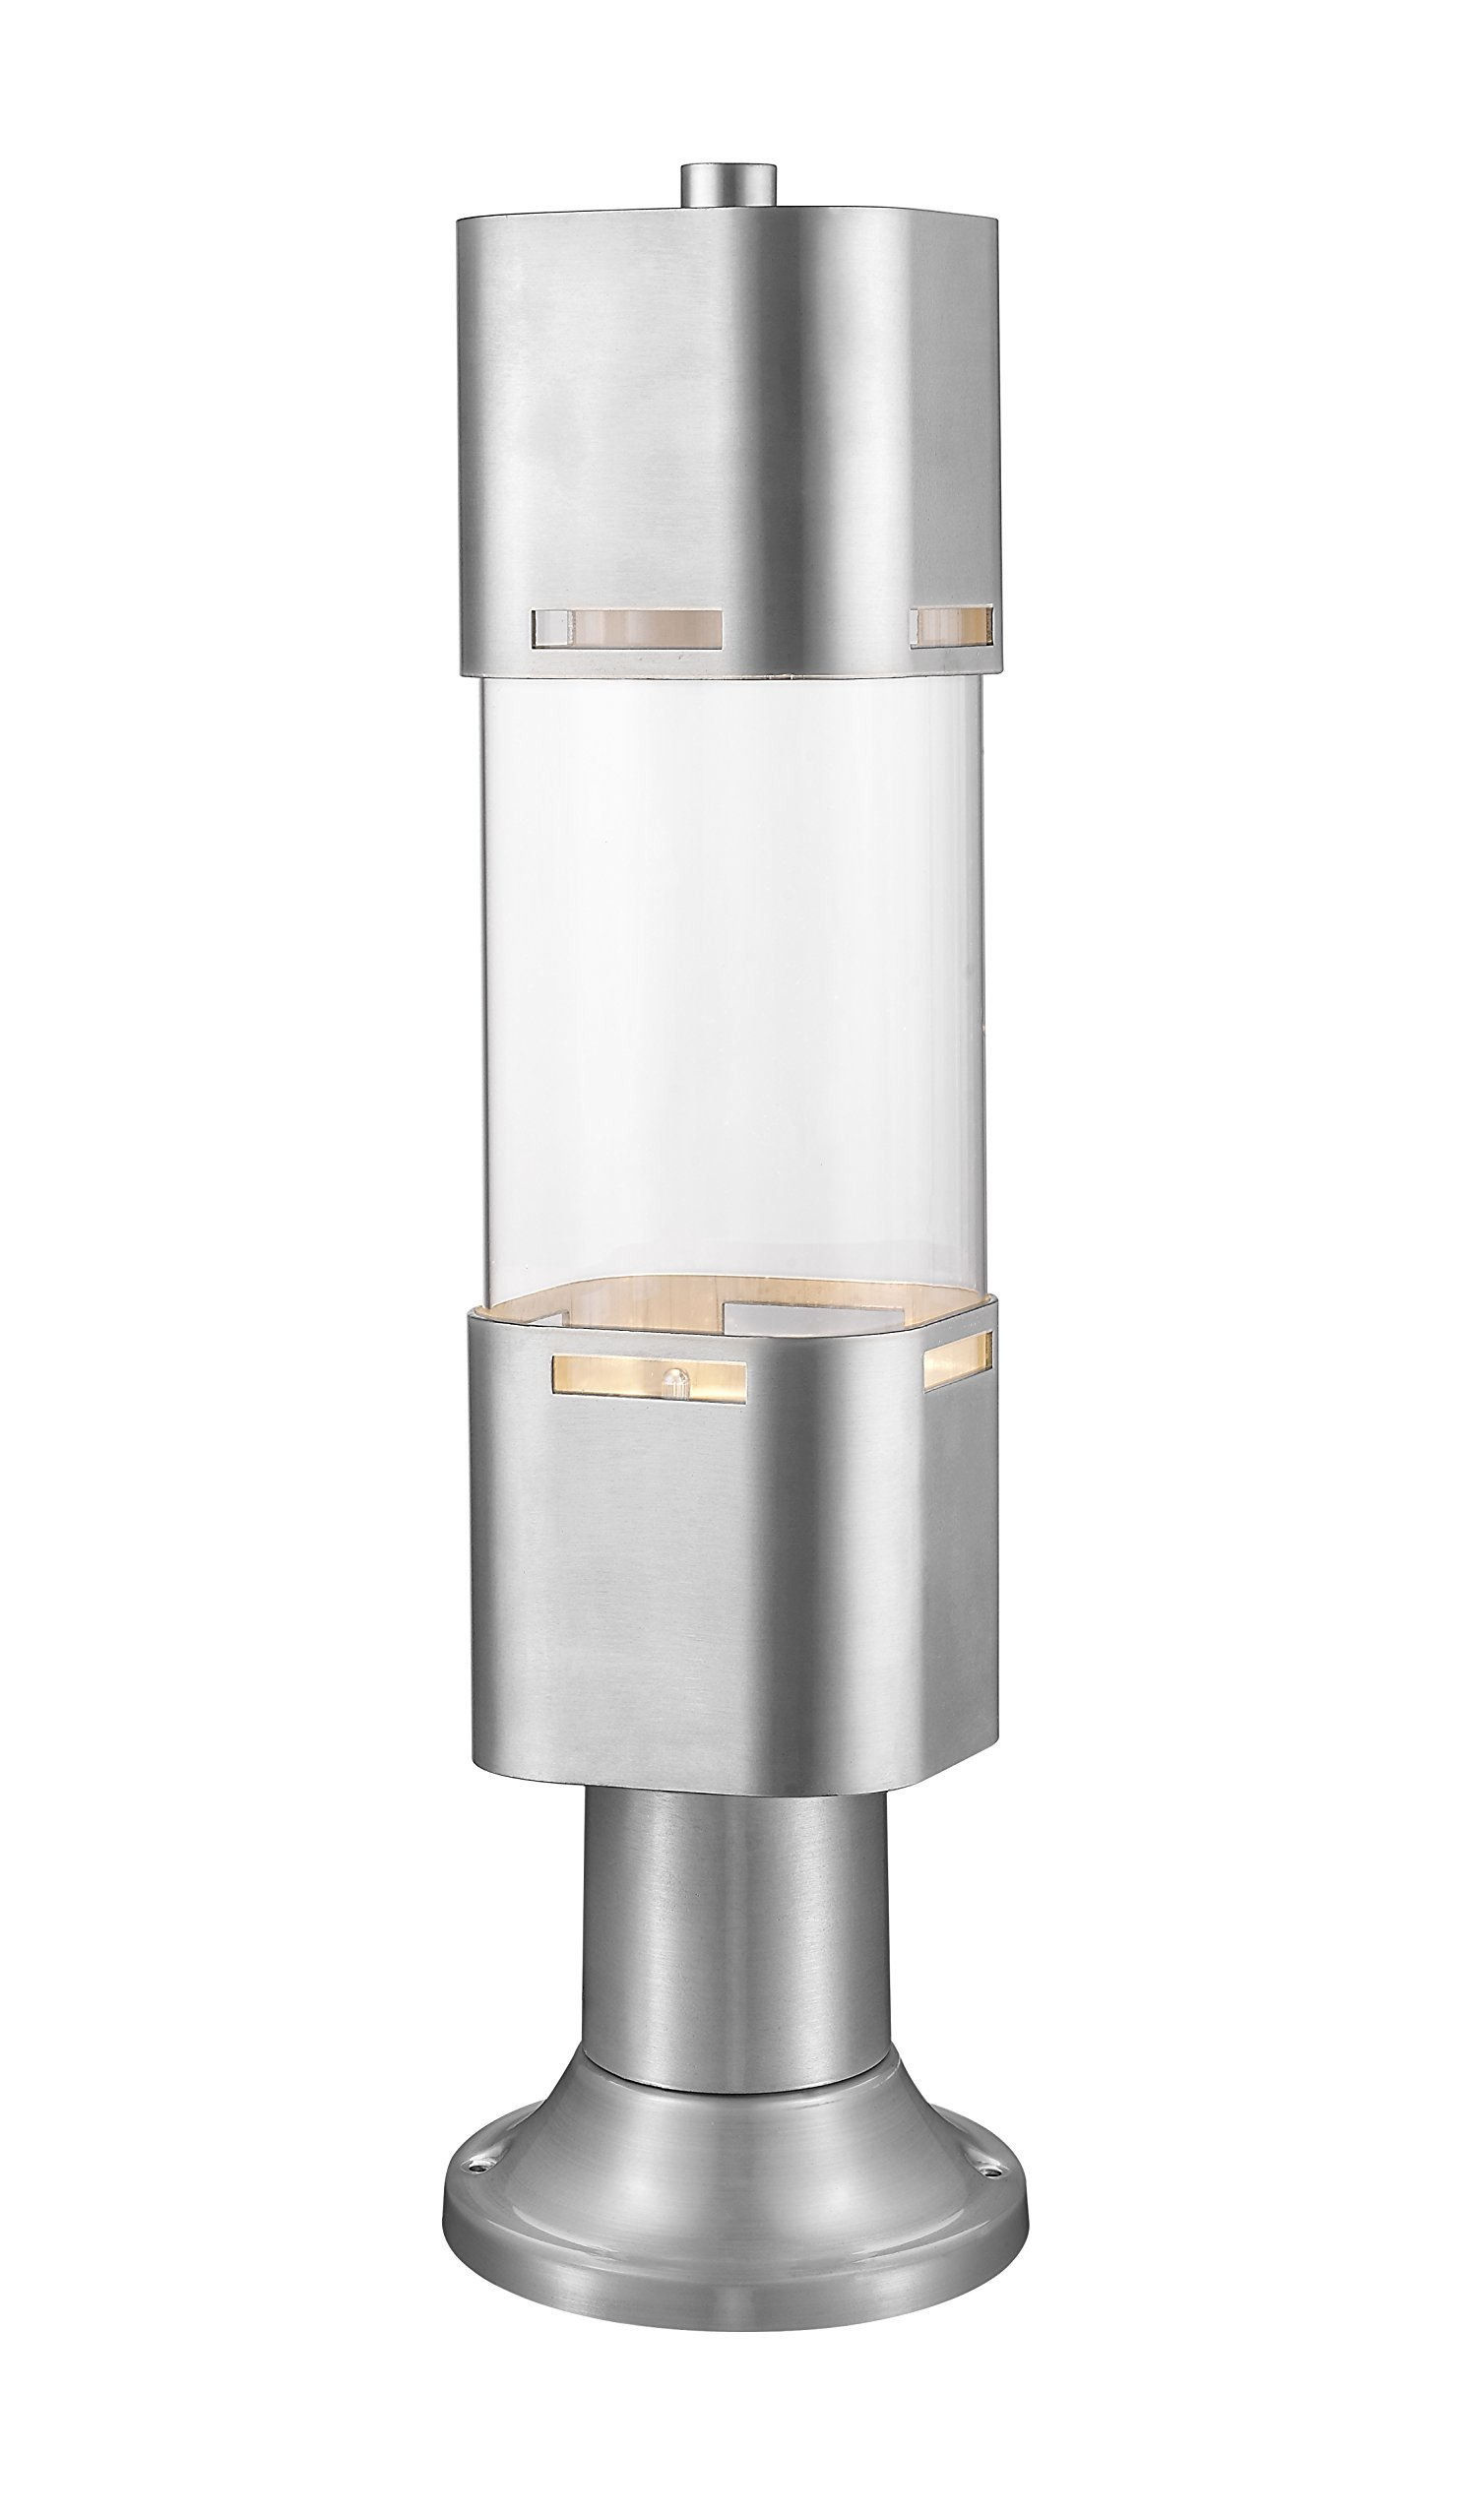 Z-Lite 562PHBR-553PM-BA-LED 1 Light Outdoor LED Post Head with Pier Mount 1